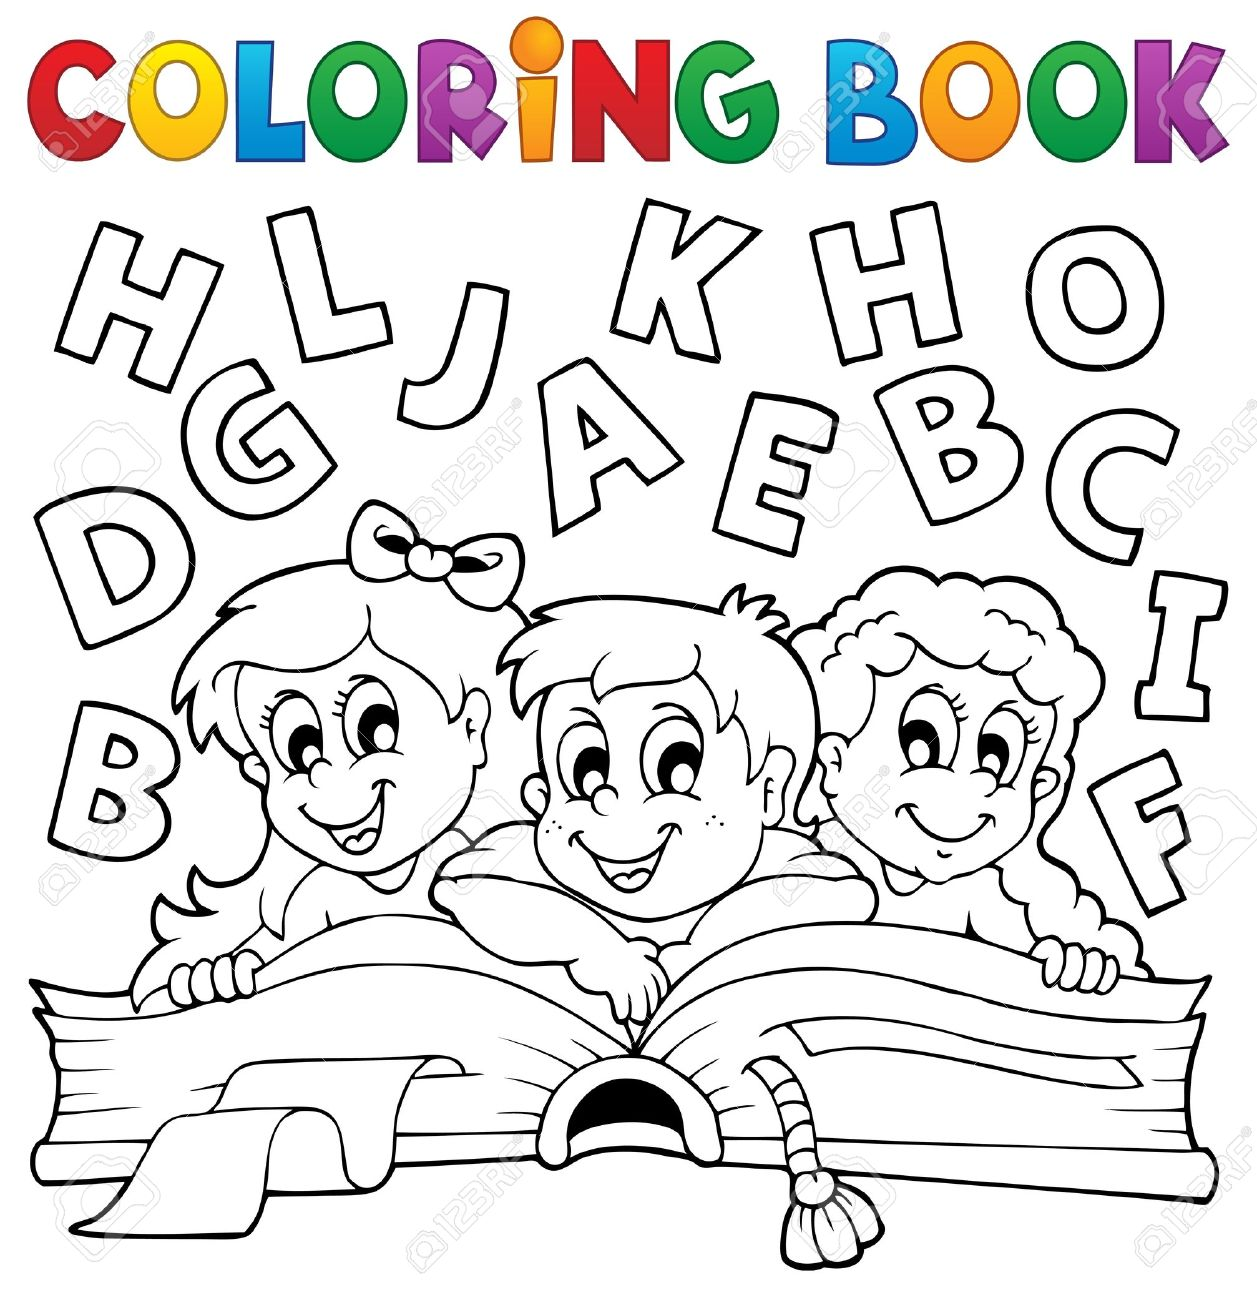 Coloring Book Kids Theme 5 - Eps10 Vector Illustration Royalty Free ...